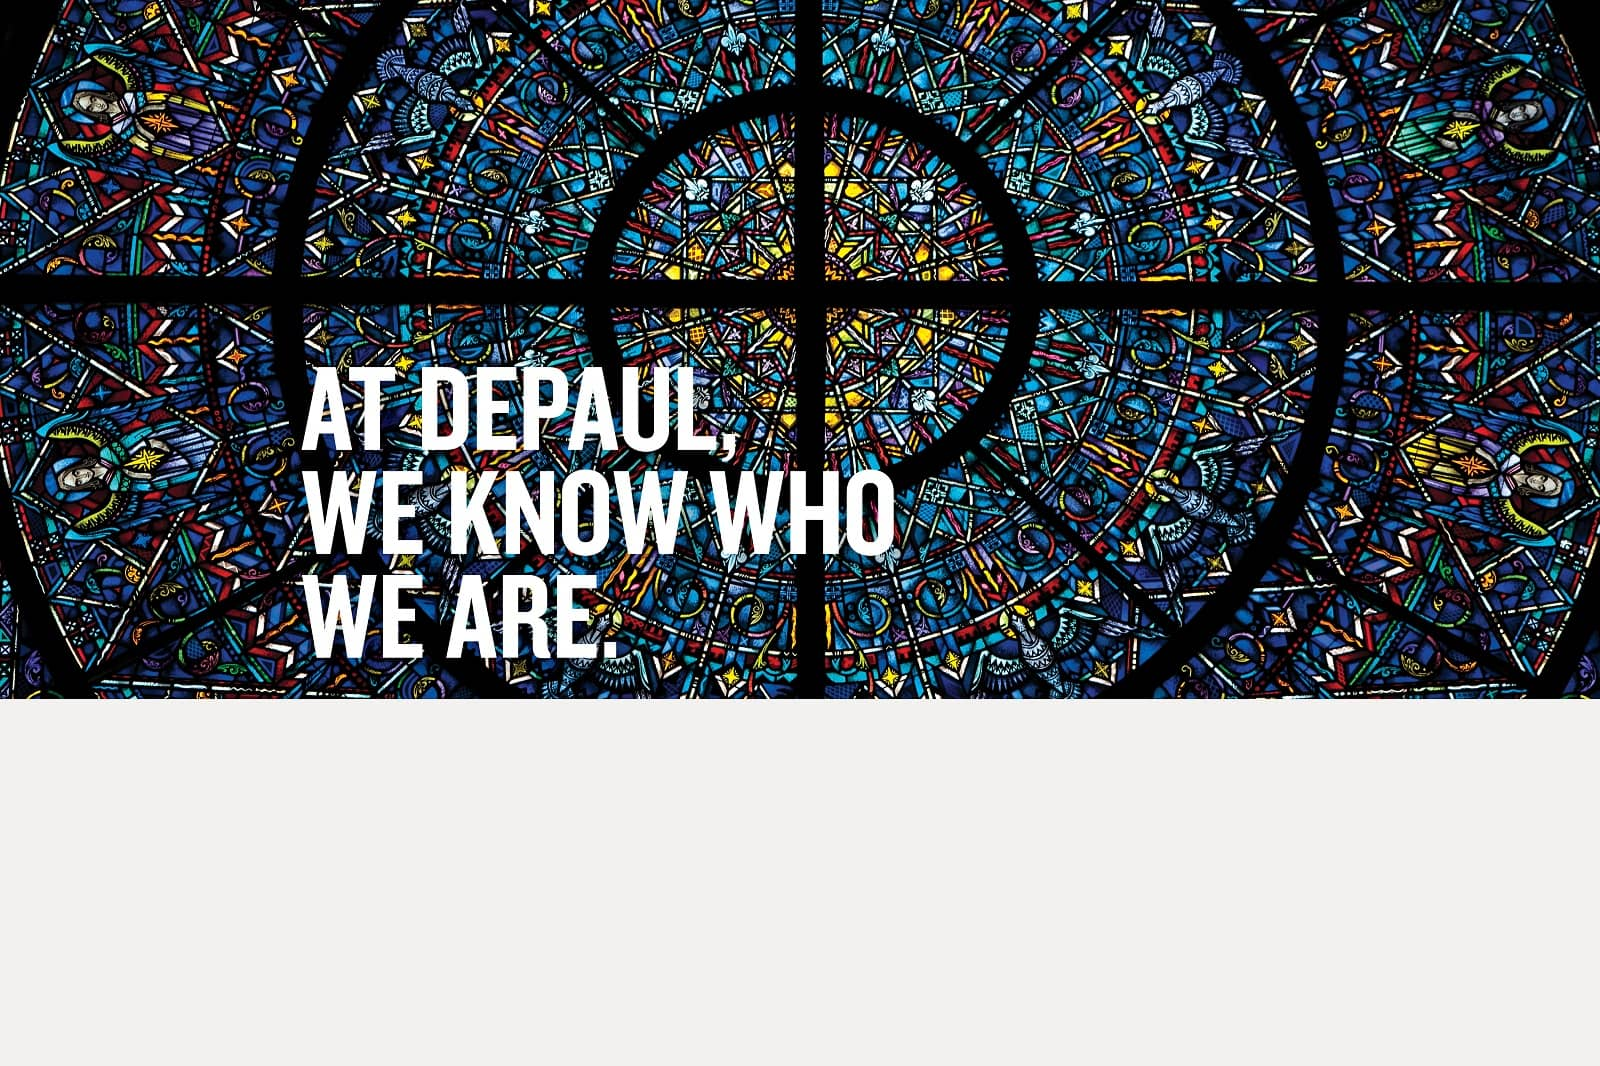 At DePaul, we know who we are.